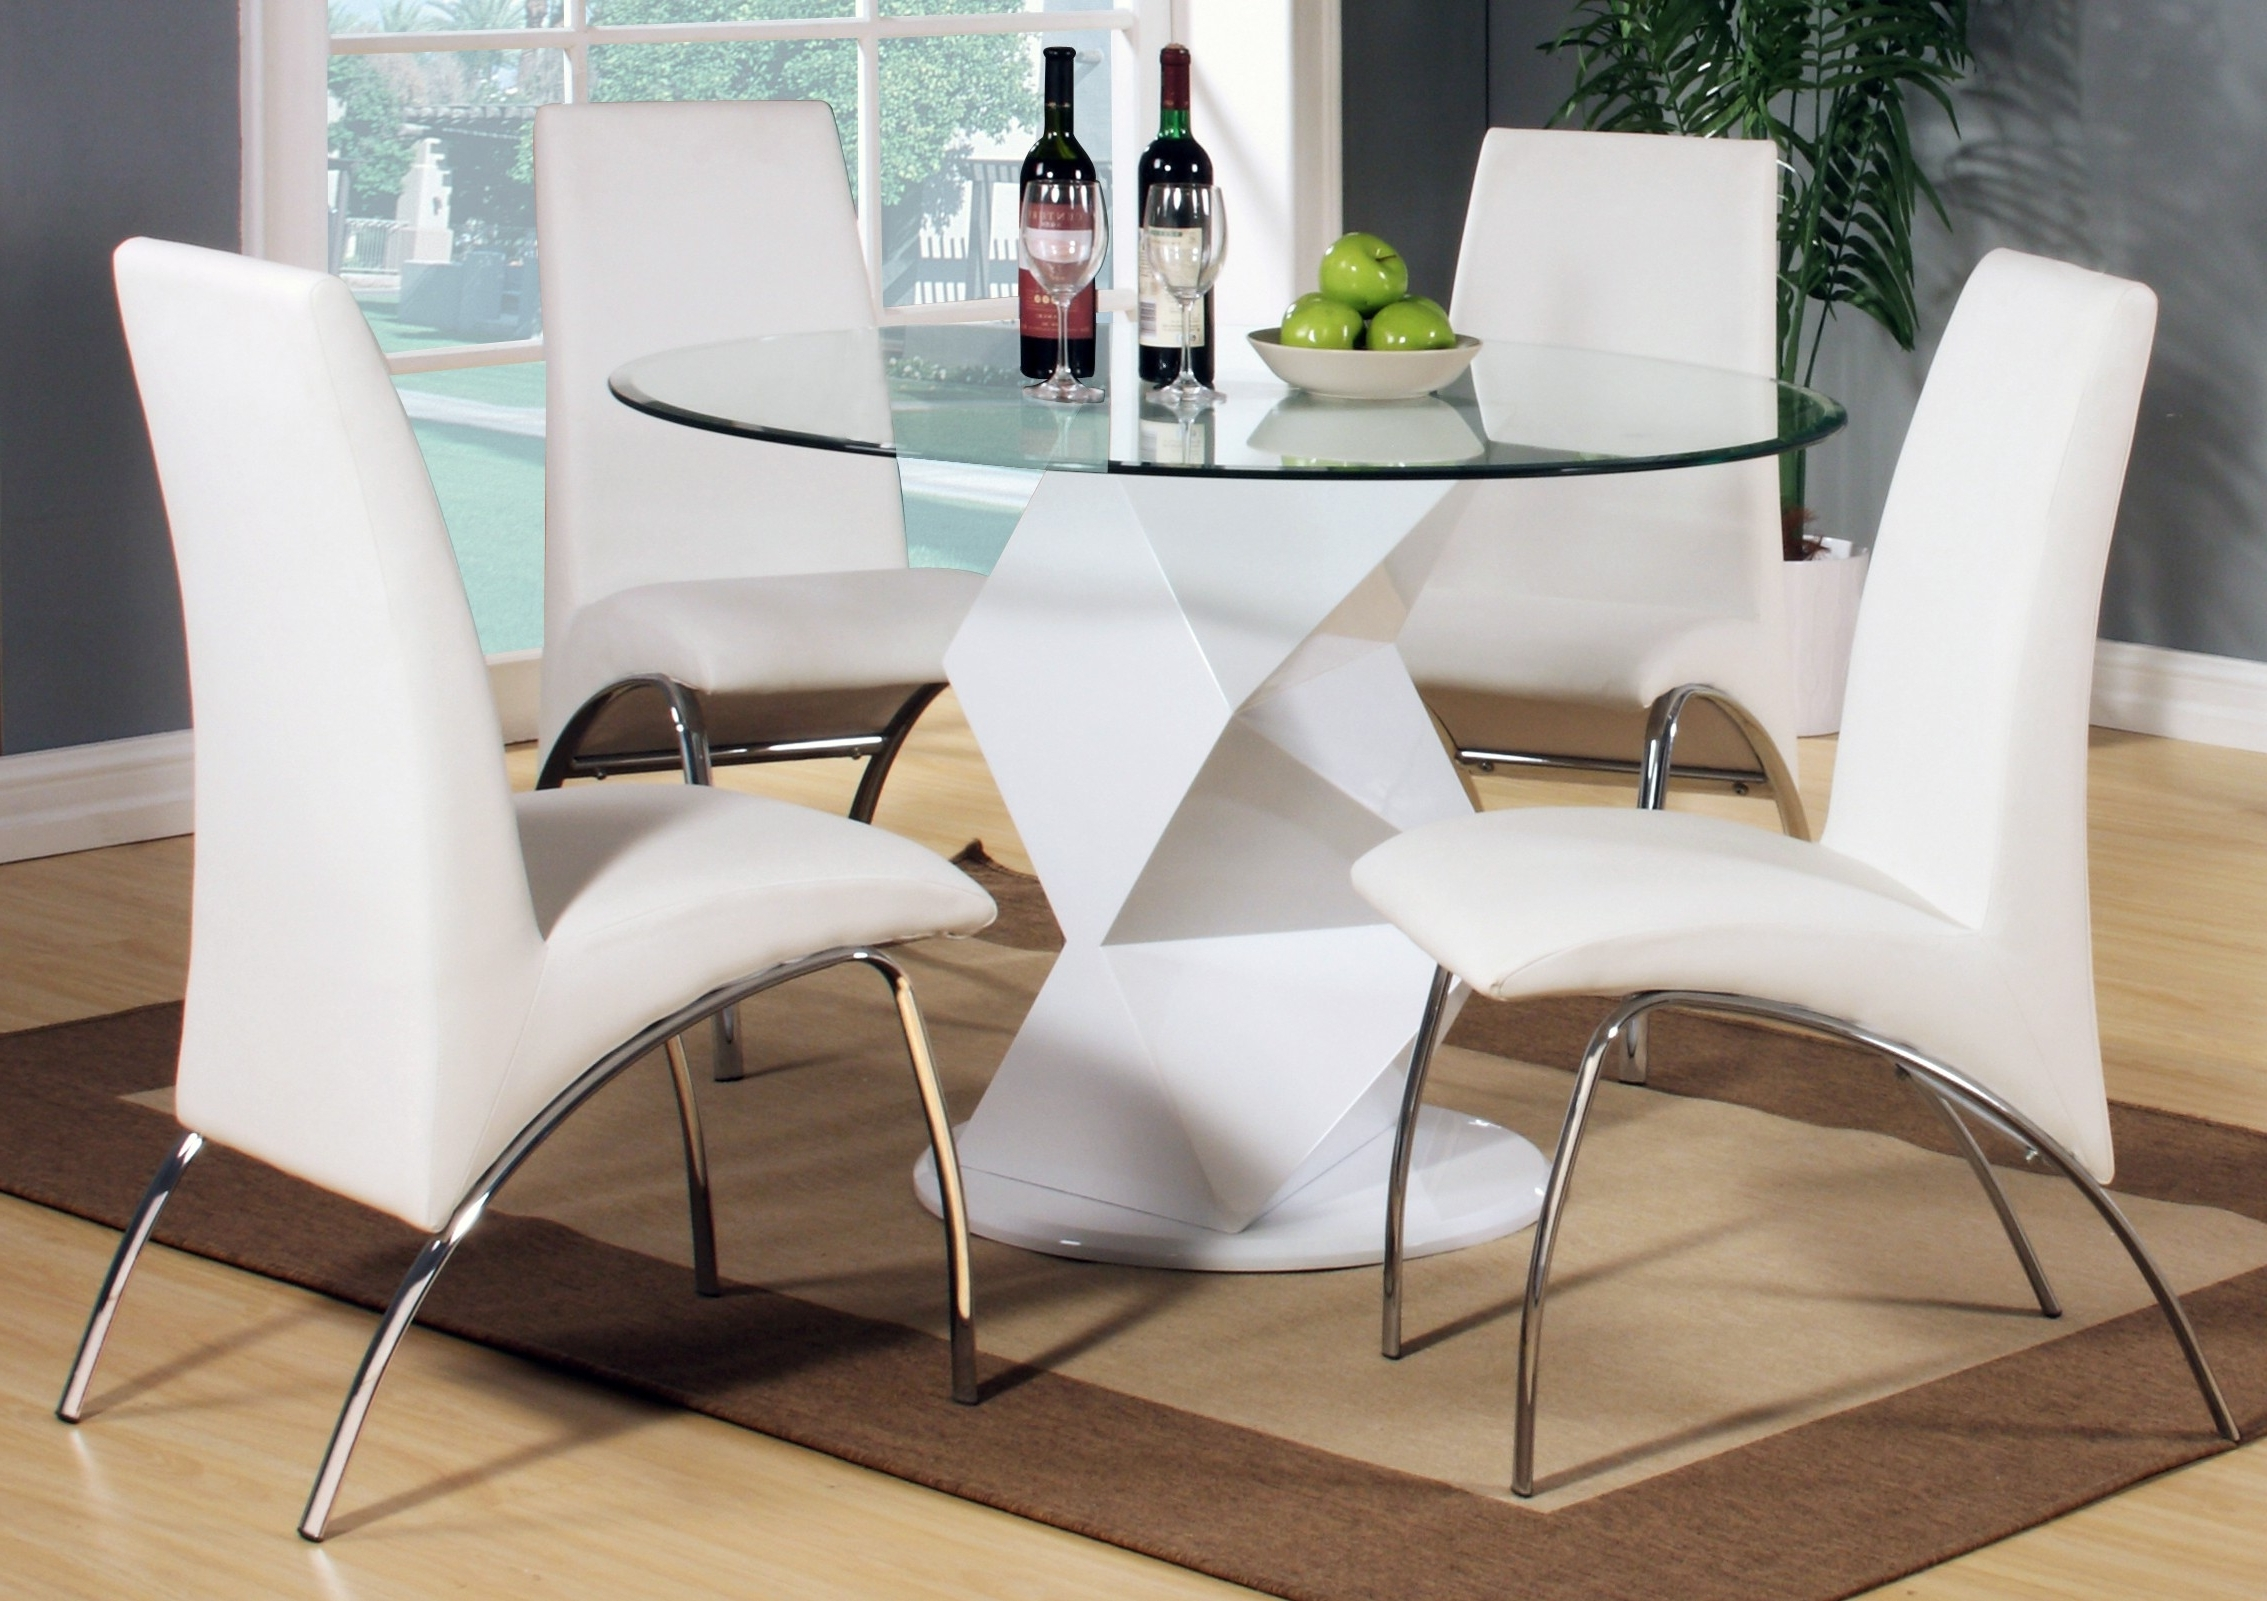 White Gloss Dining Tables Sets Pertaining To Best And Newest Finn White High Gloss Round Dining Table Set 4 Seater (View 6 of 25)